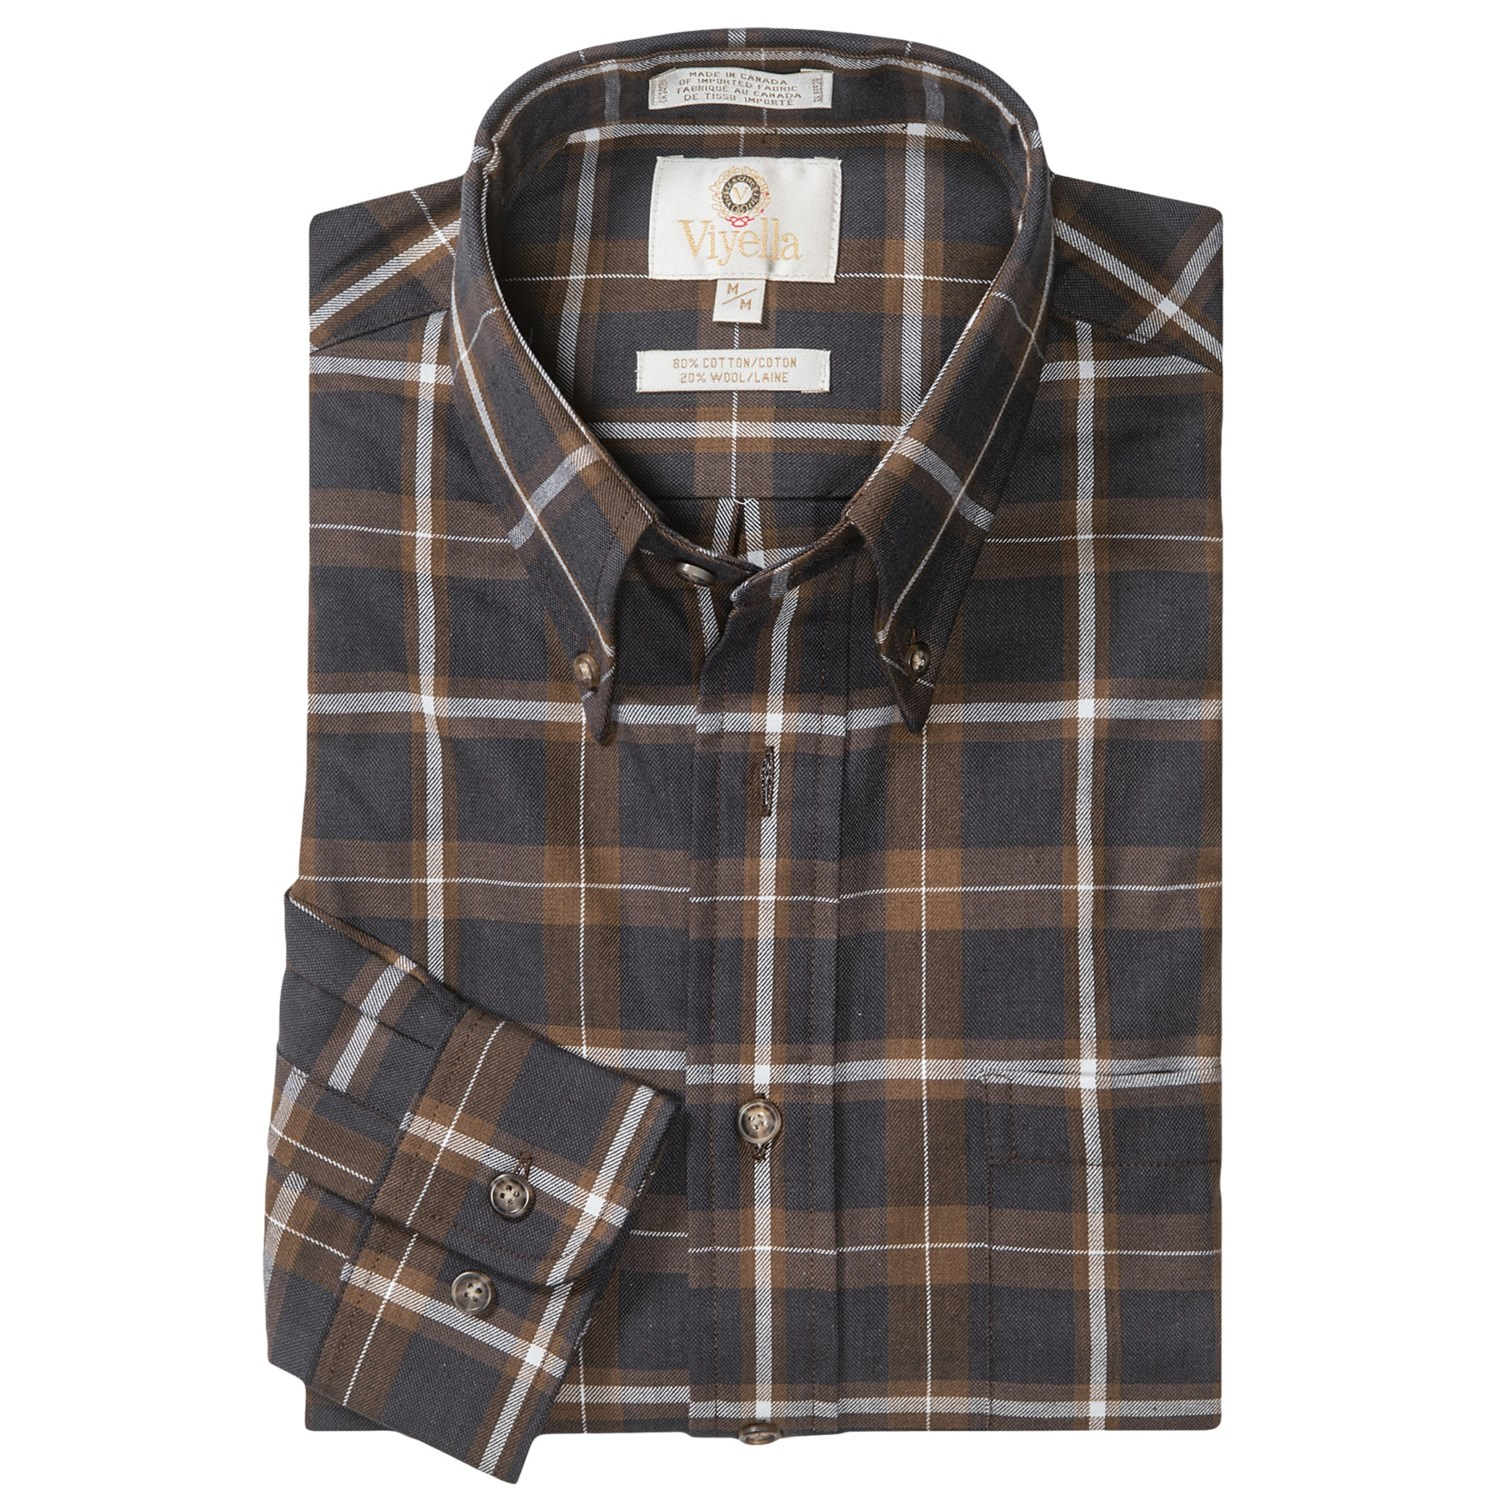 English Wool Sport Shirts For Men 15